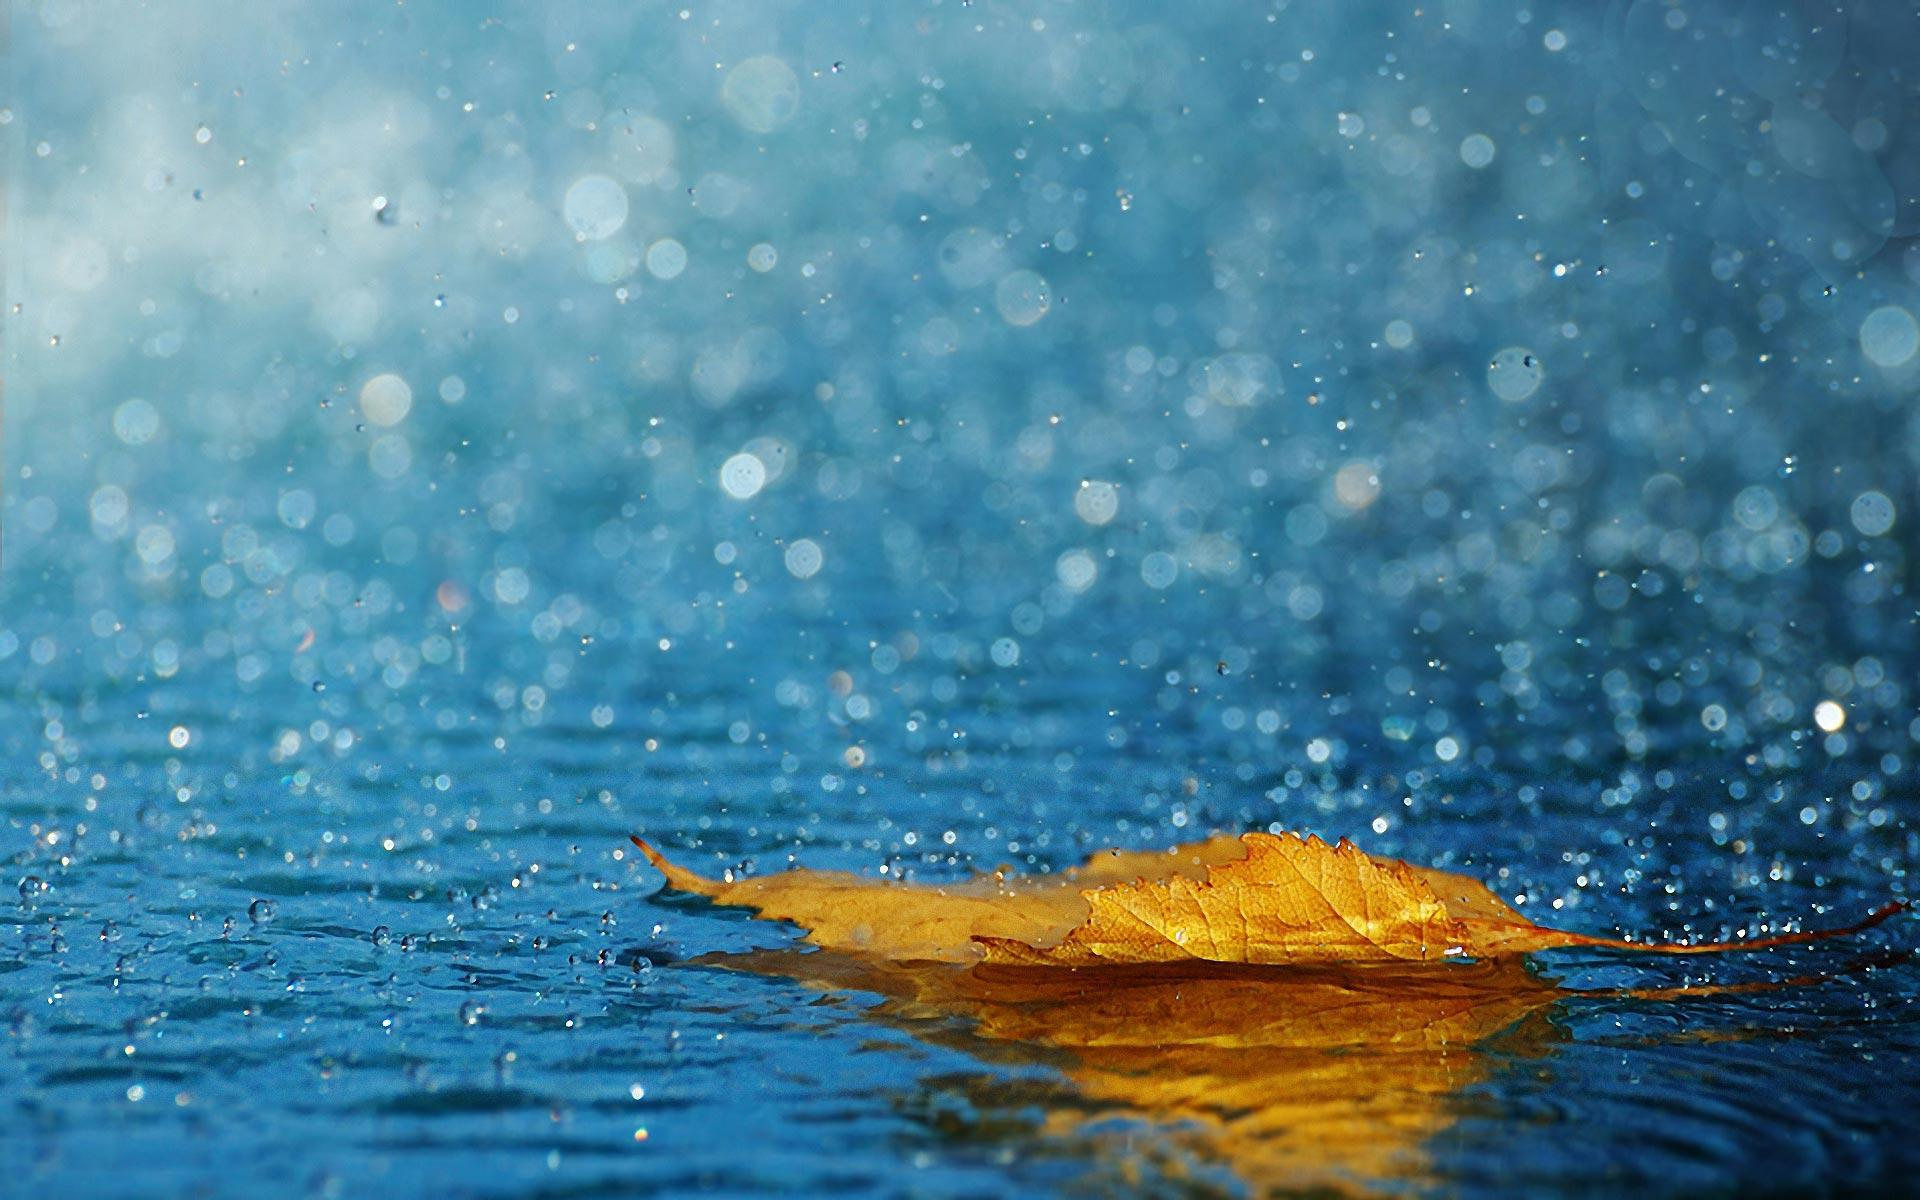 Rain-Wallpaper-HD-Widescreen-4.jpg